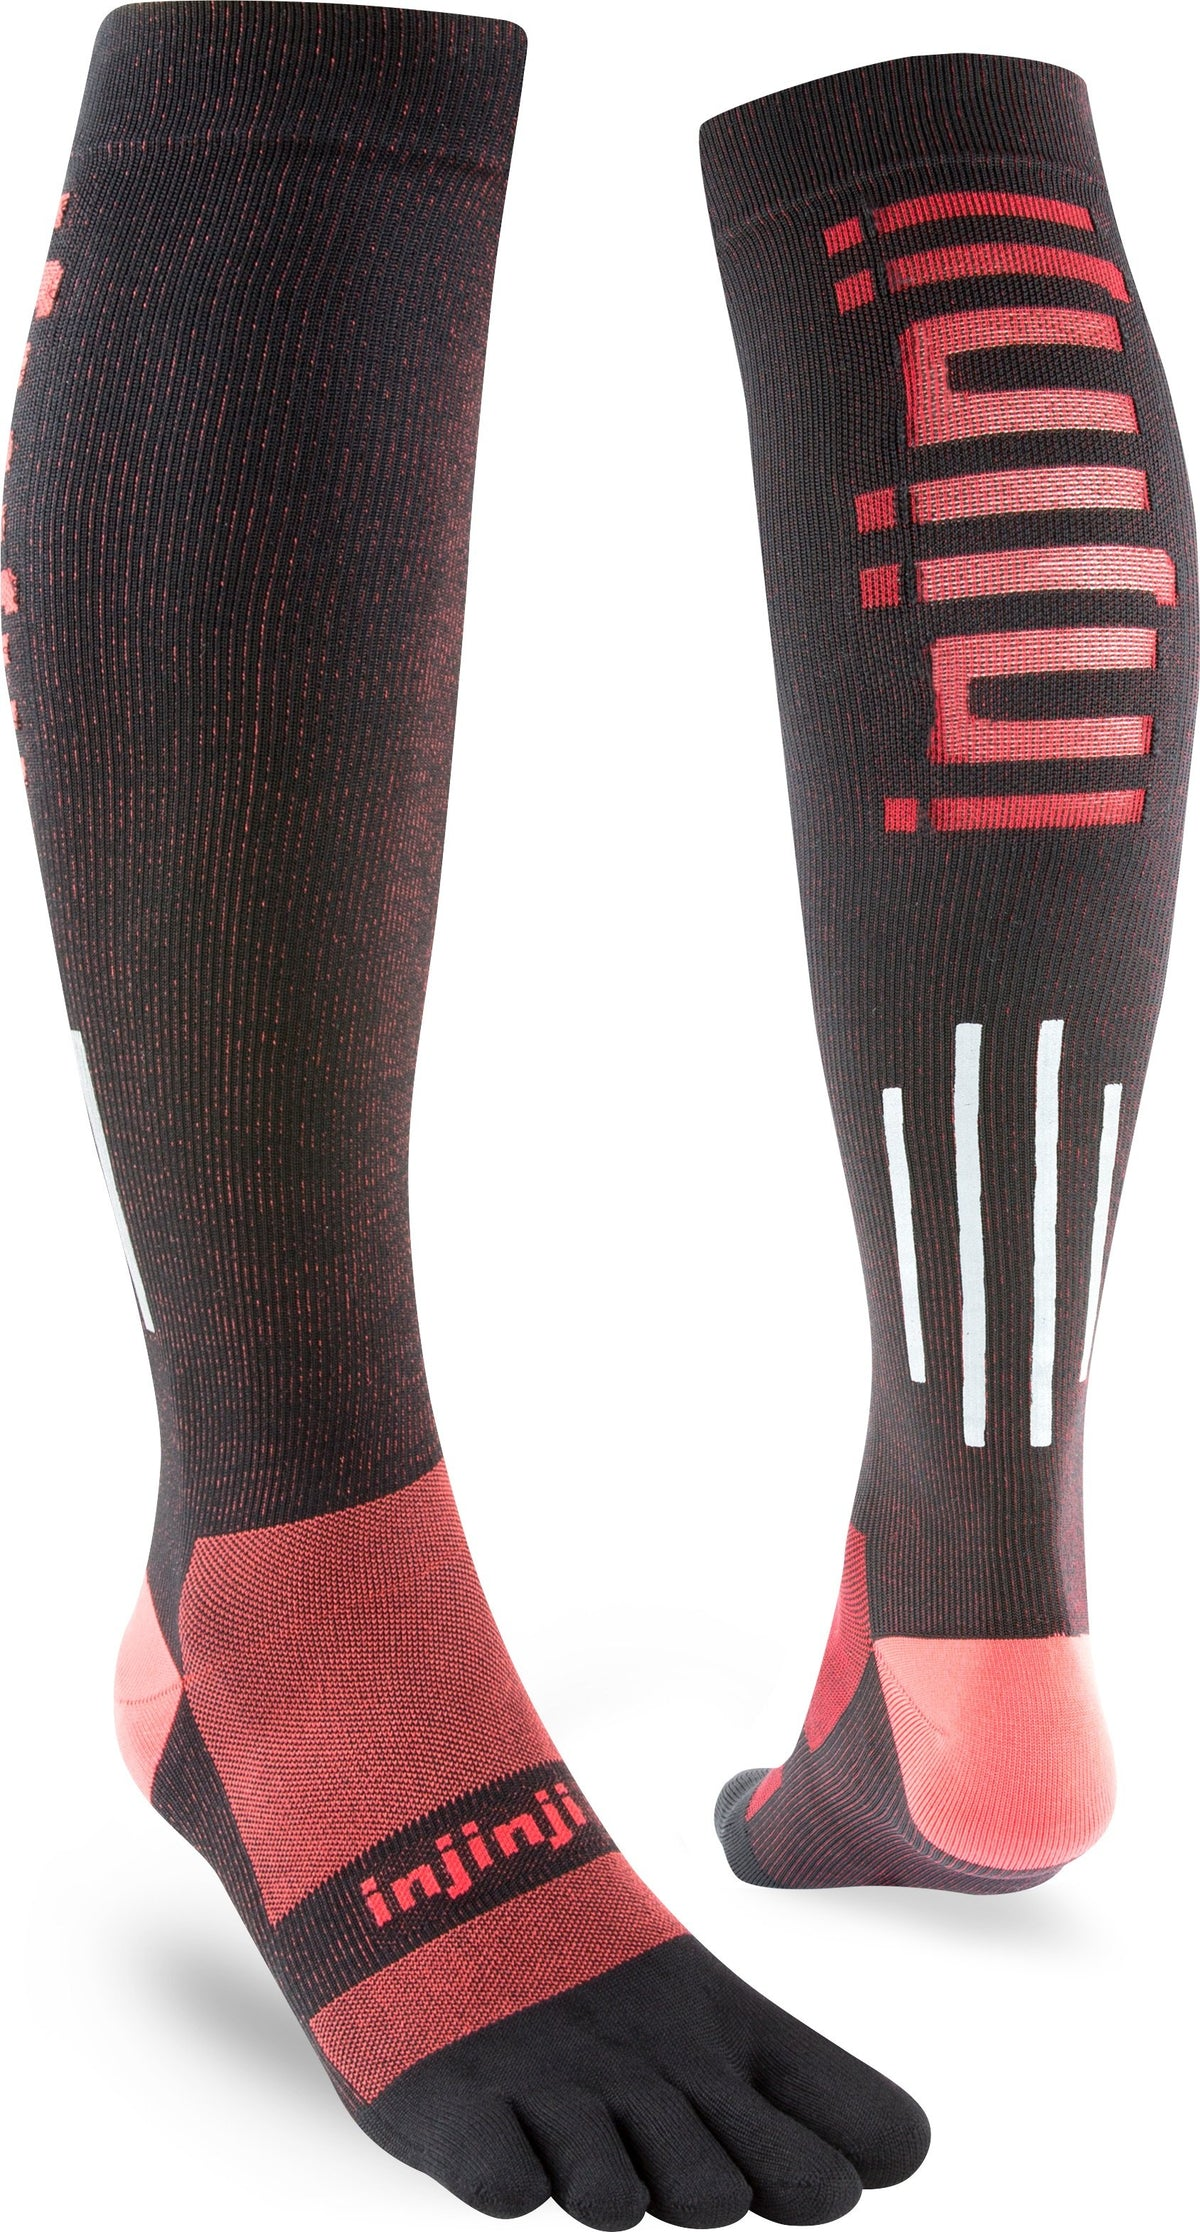 Injinji Toe Socks - Compression Lightweight